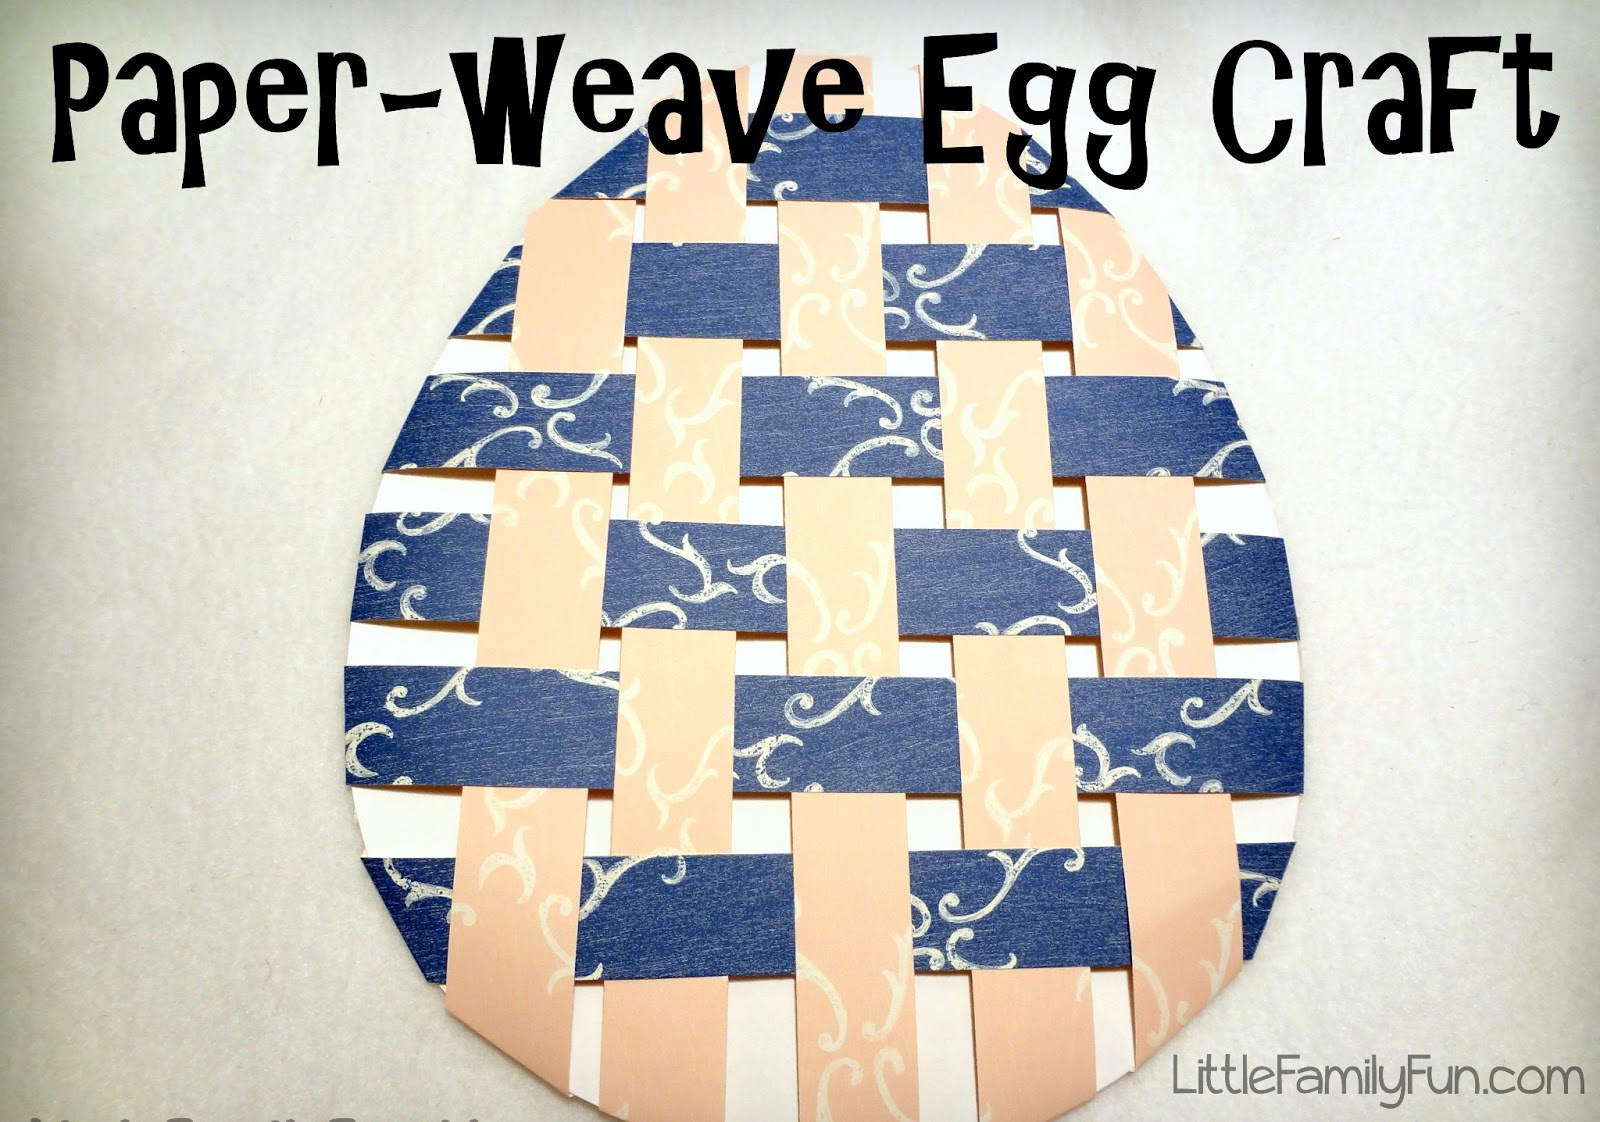 Basket Weaving Using Construction Paper : Little family fun paper weave egg